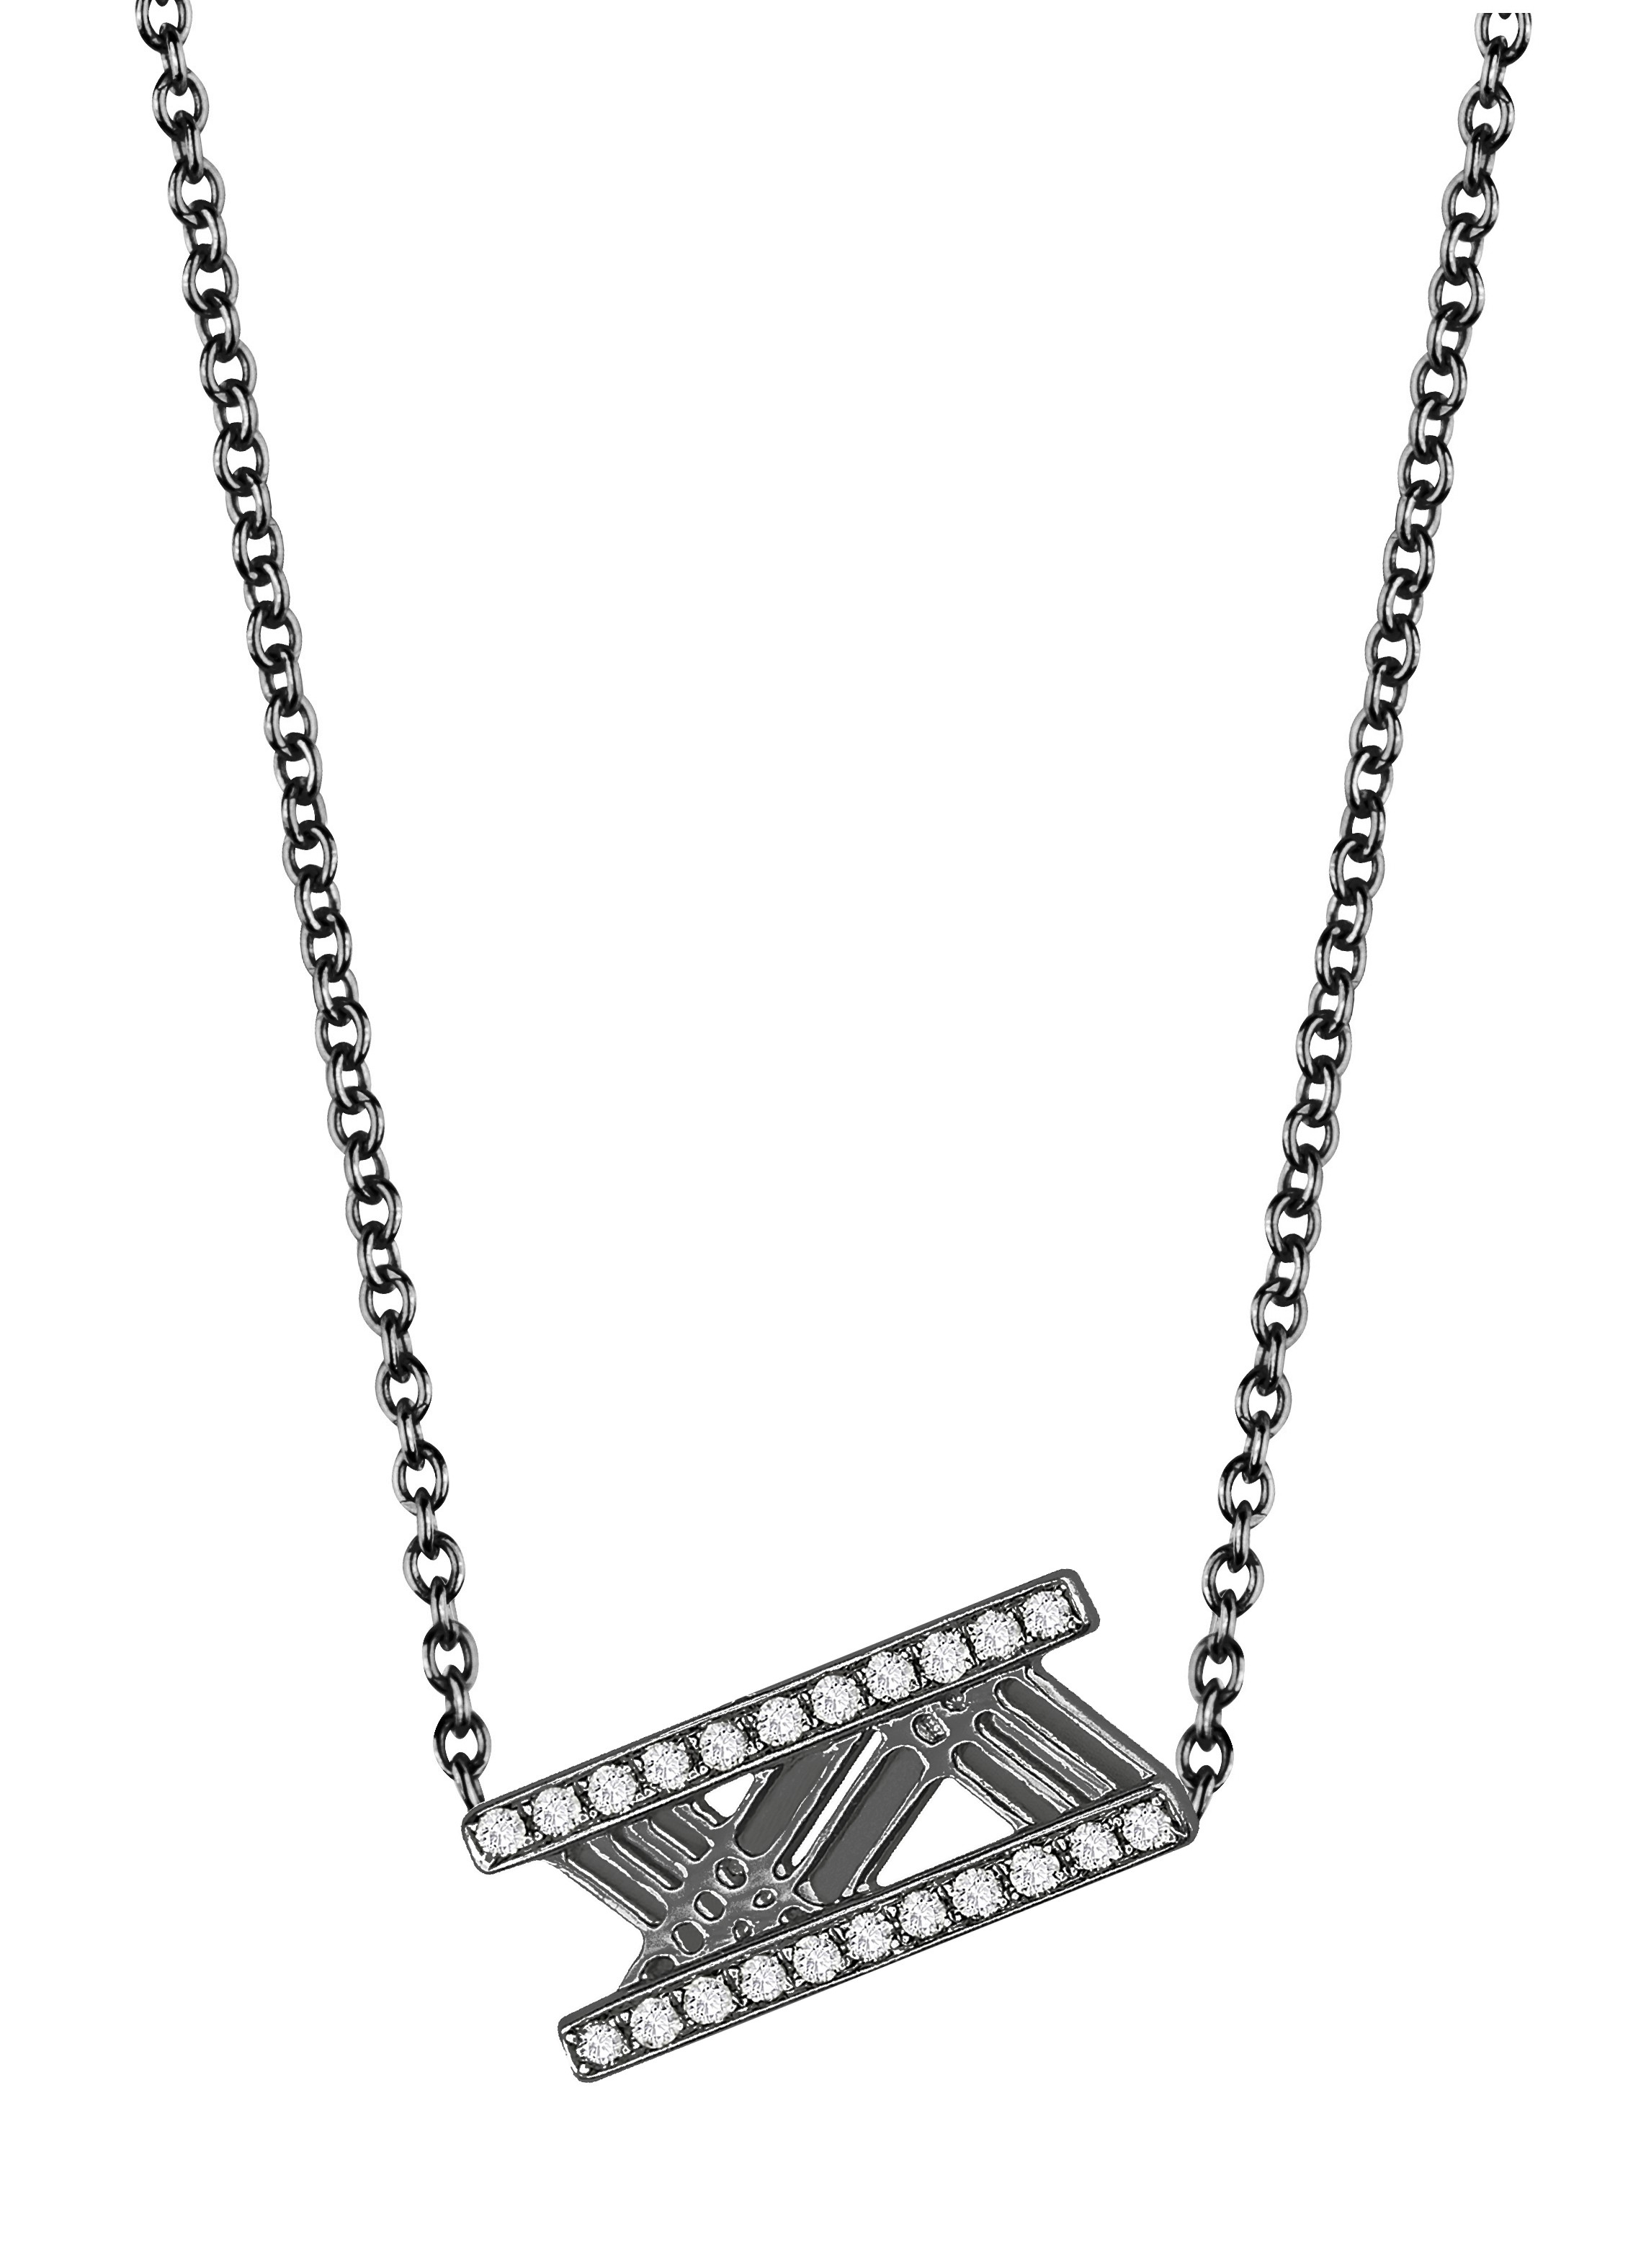 Discrétion Bakwani7 Or diamants – Collier